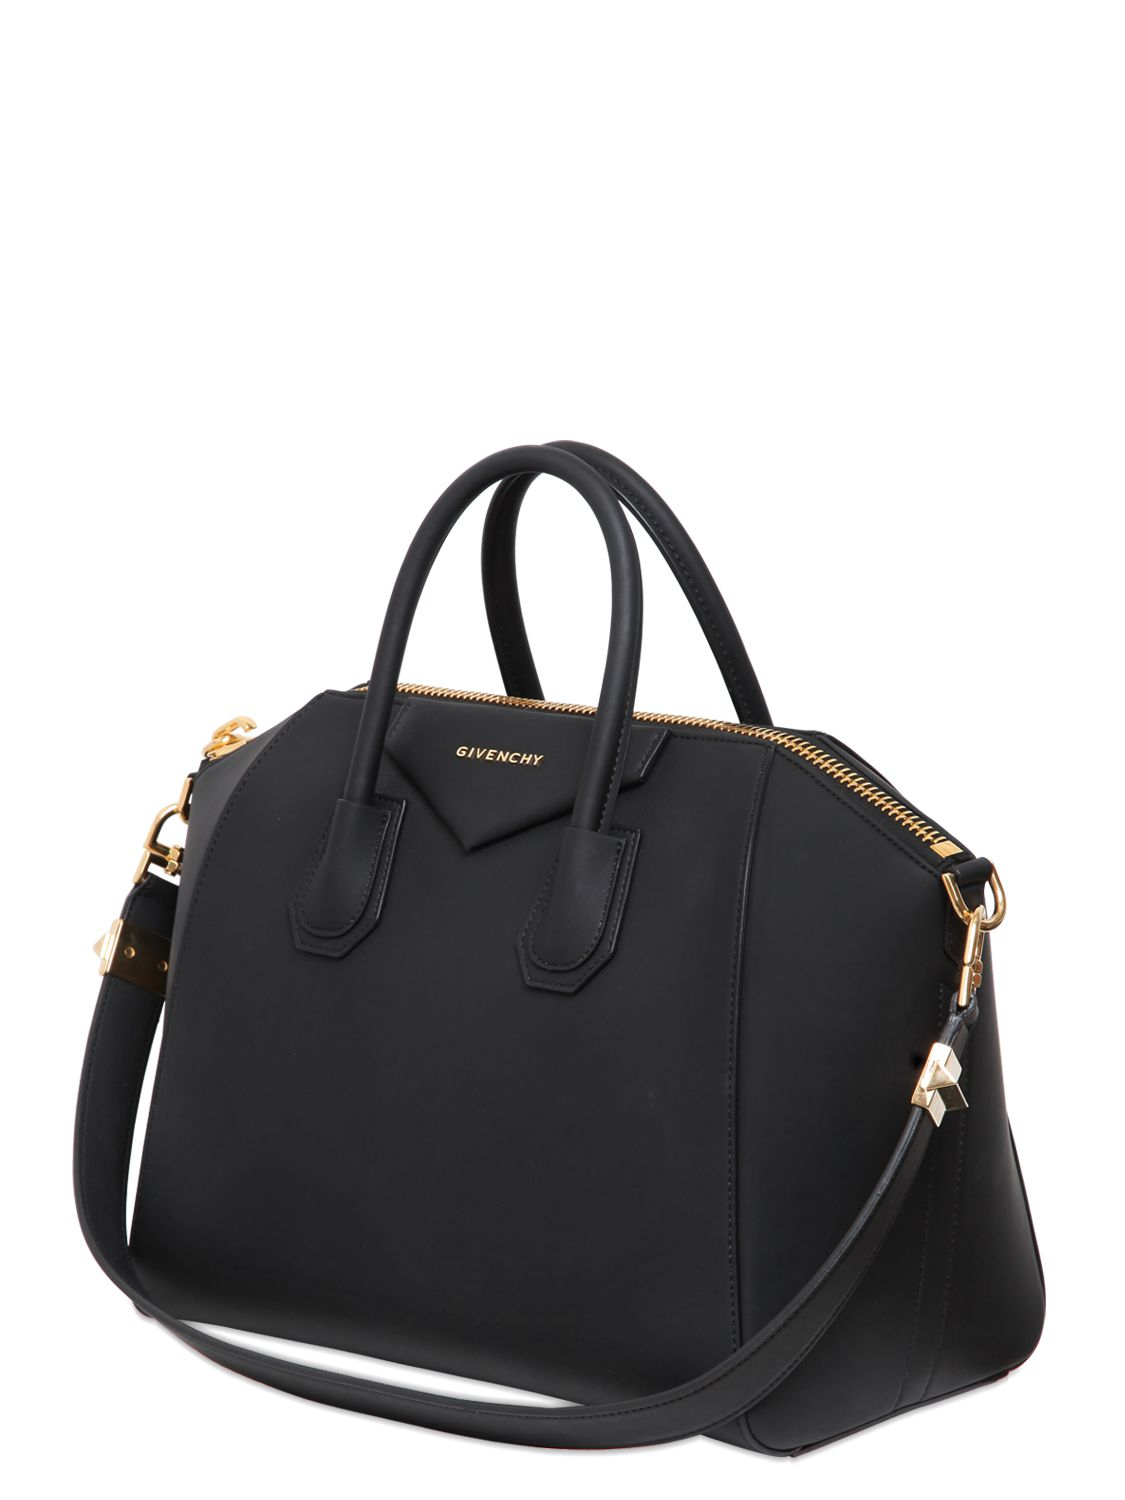 4aaa844e50 Givenchy Medium Antigona Rubber Effect Bag in Black - Lyst